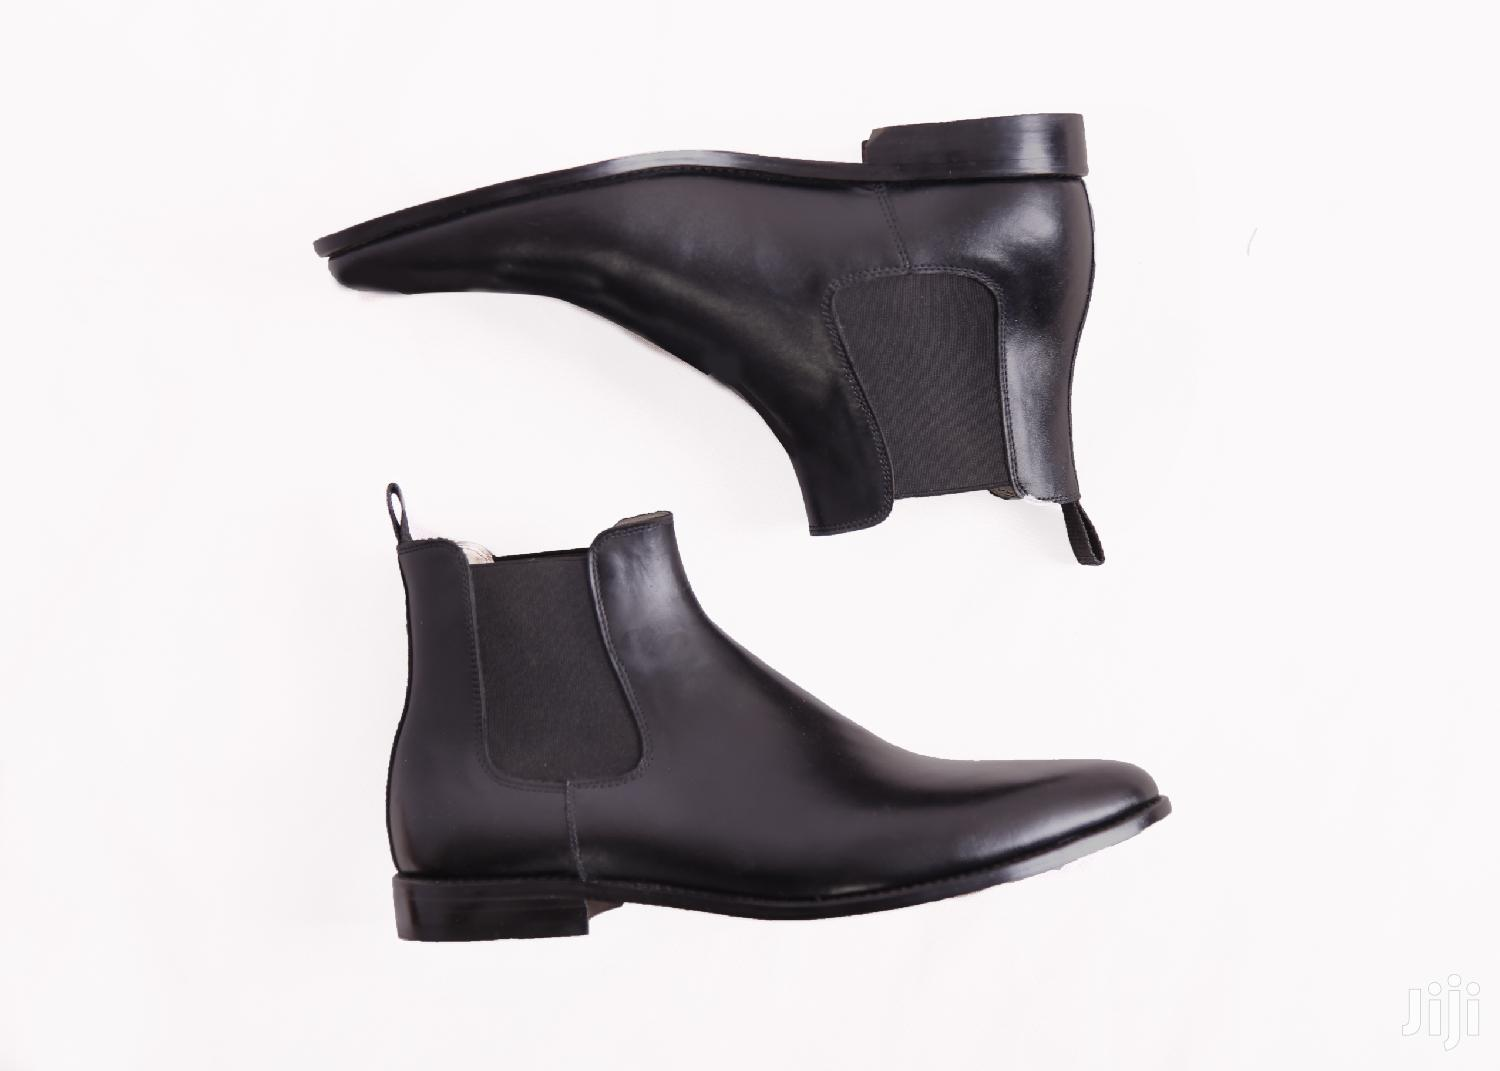 Real Leather Chelsea Boots, Reduced to Clear Stocks Buy Now